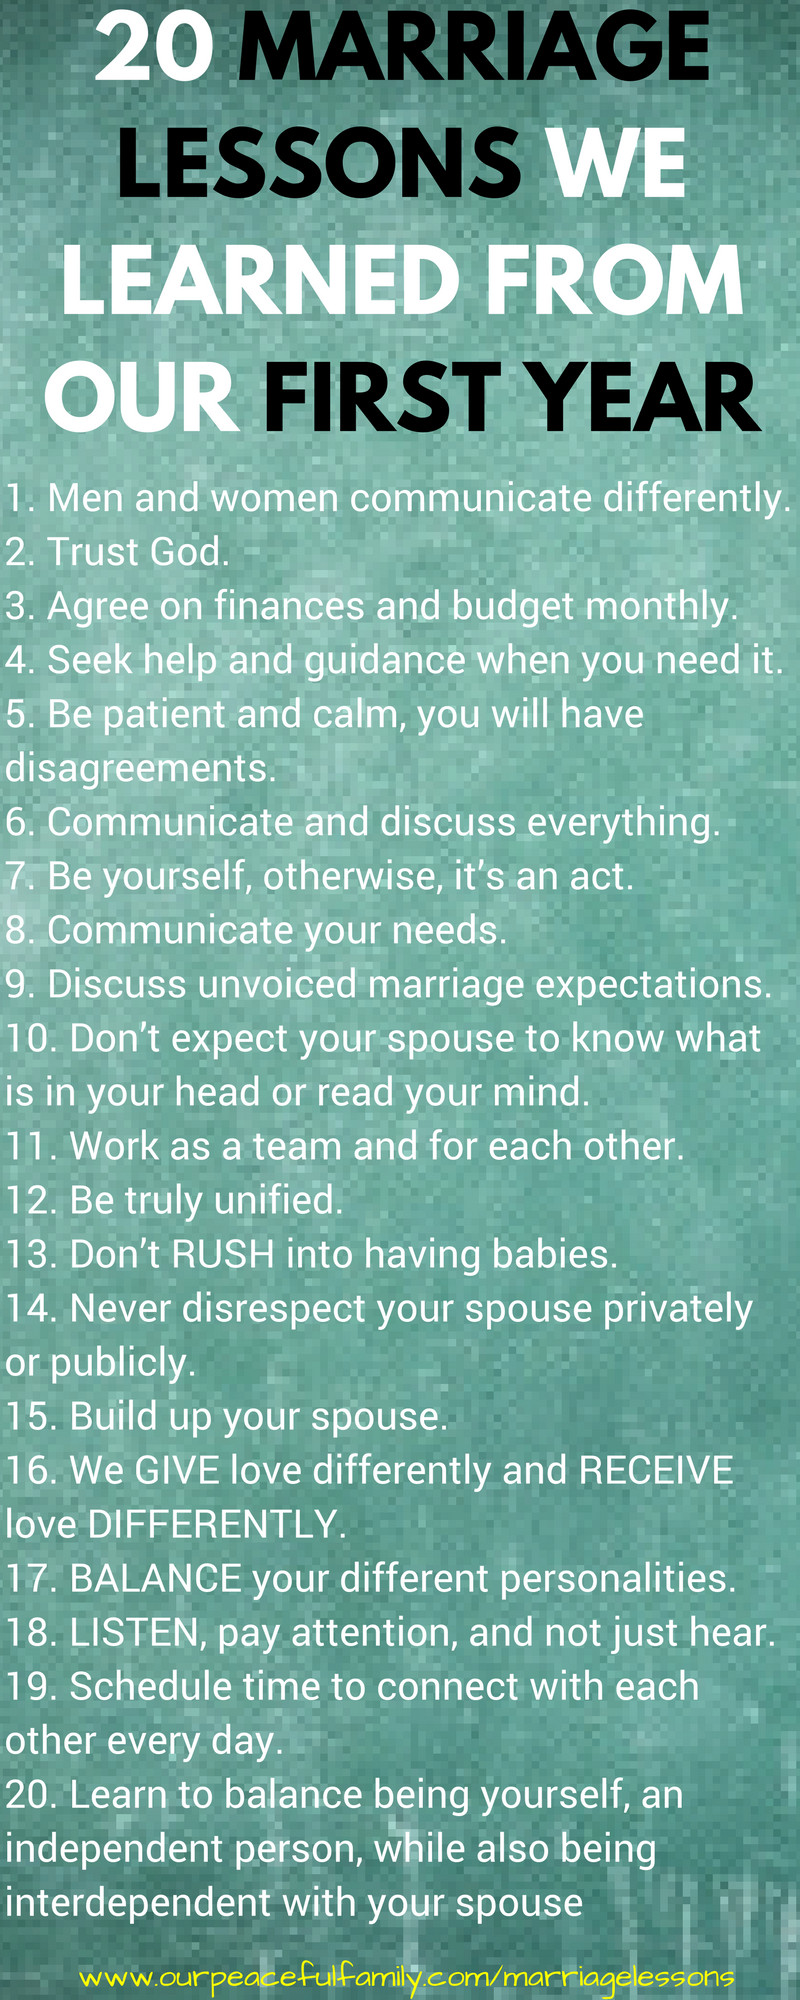 First Year Of Marriage Quotes  20 Marriage Lessons We Learned From Our First Year of